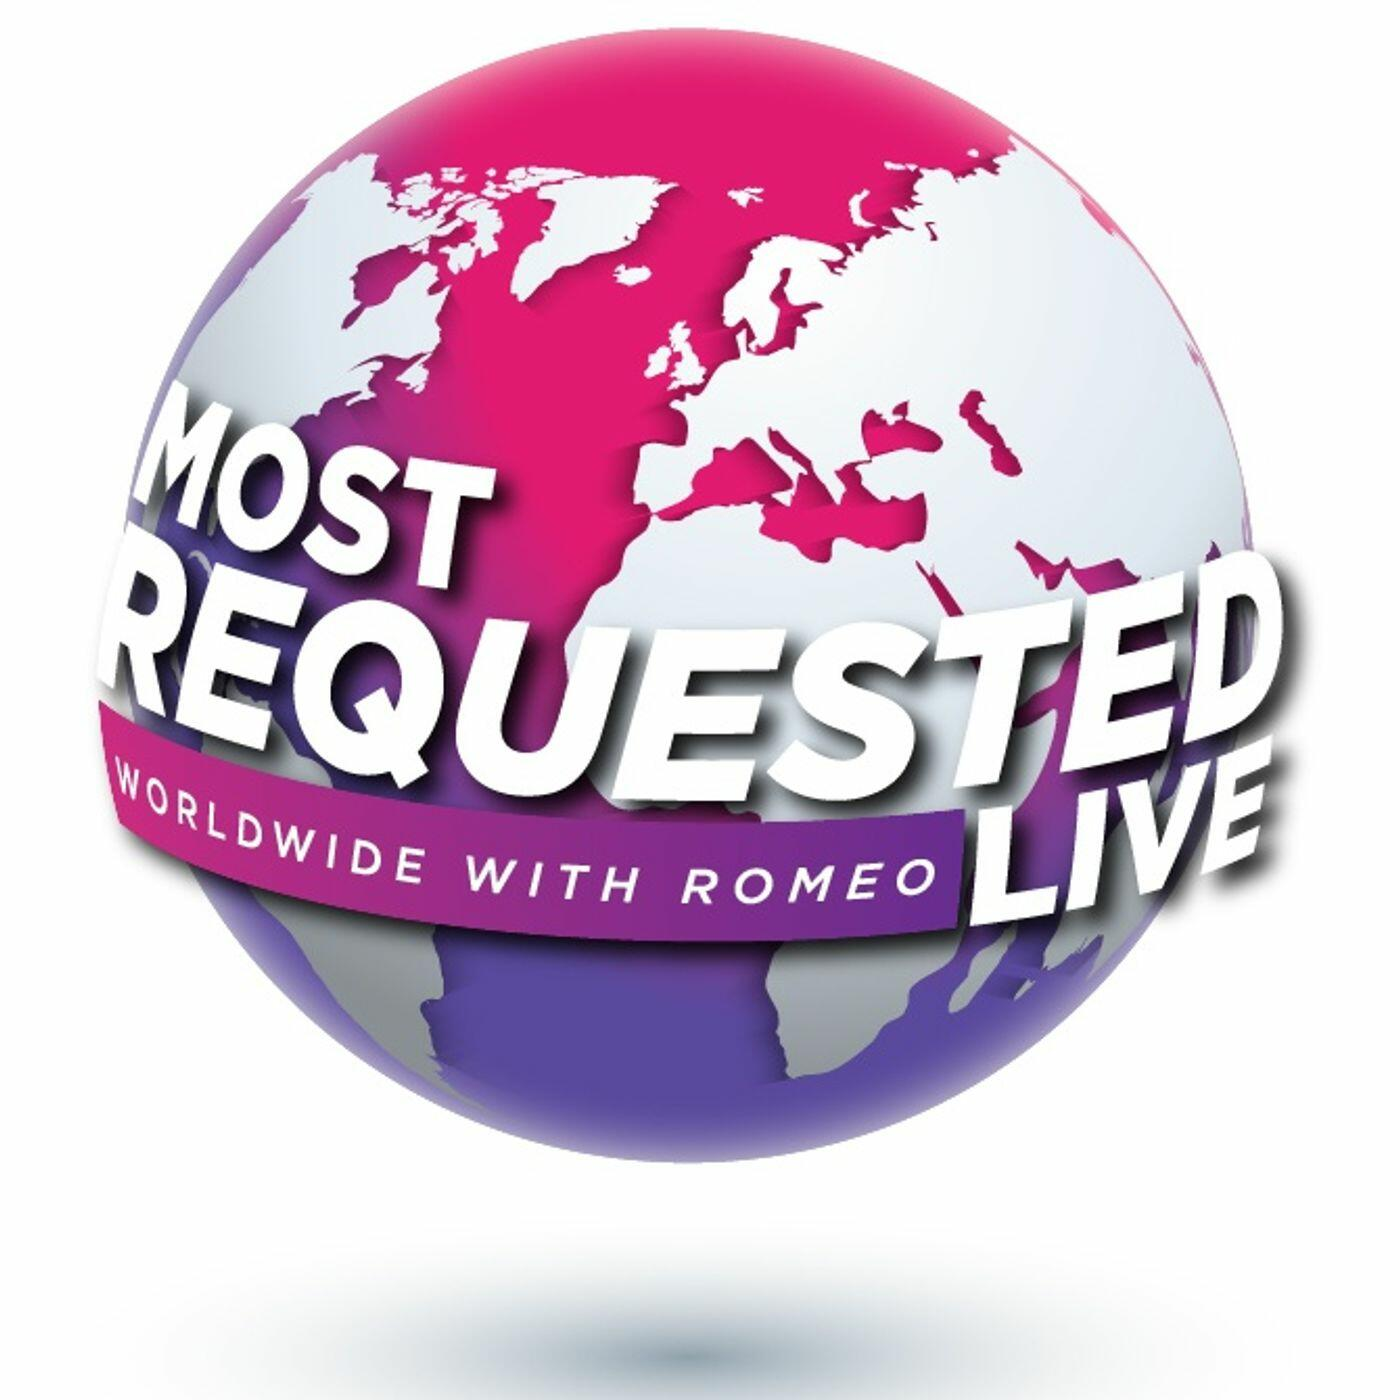 Listen to the Most Requested Live Episode - Harry Styles on iHeartRadio | iHeartRadio